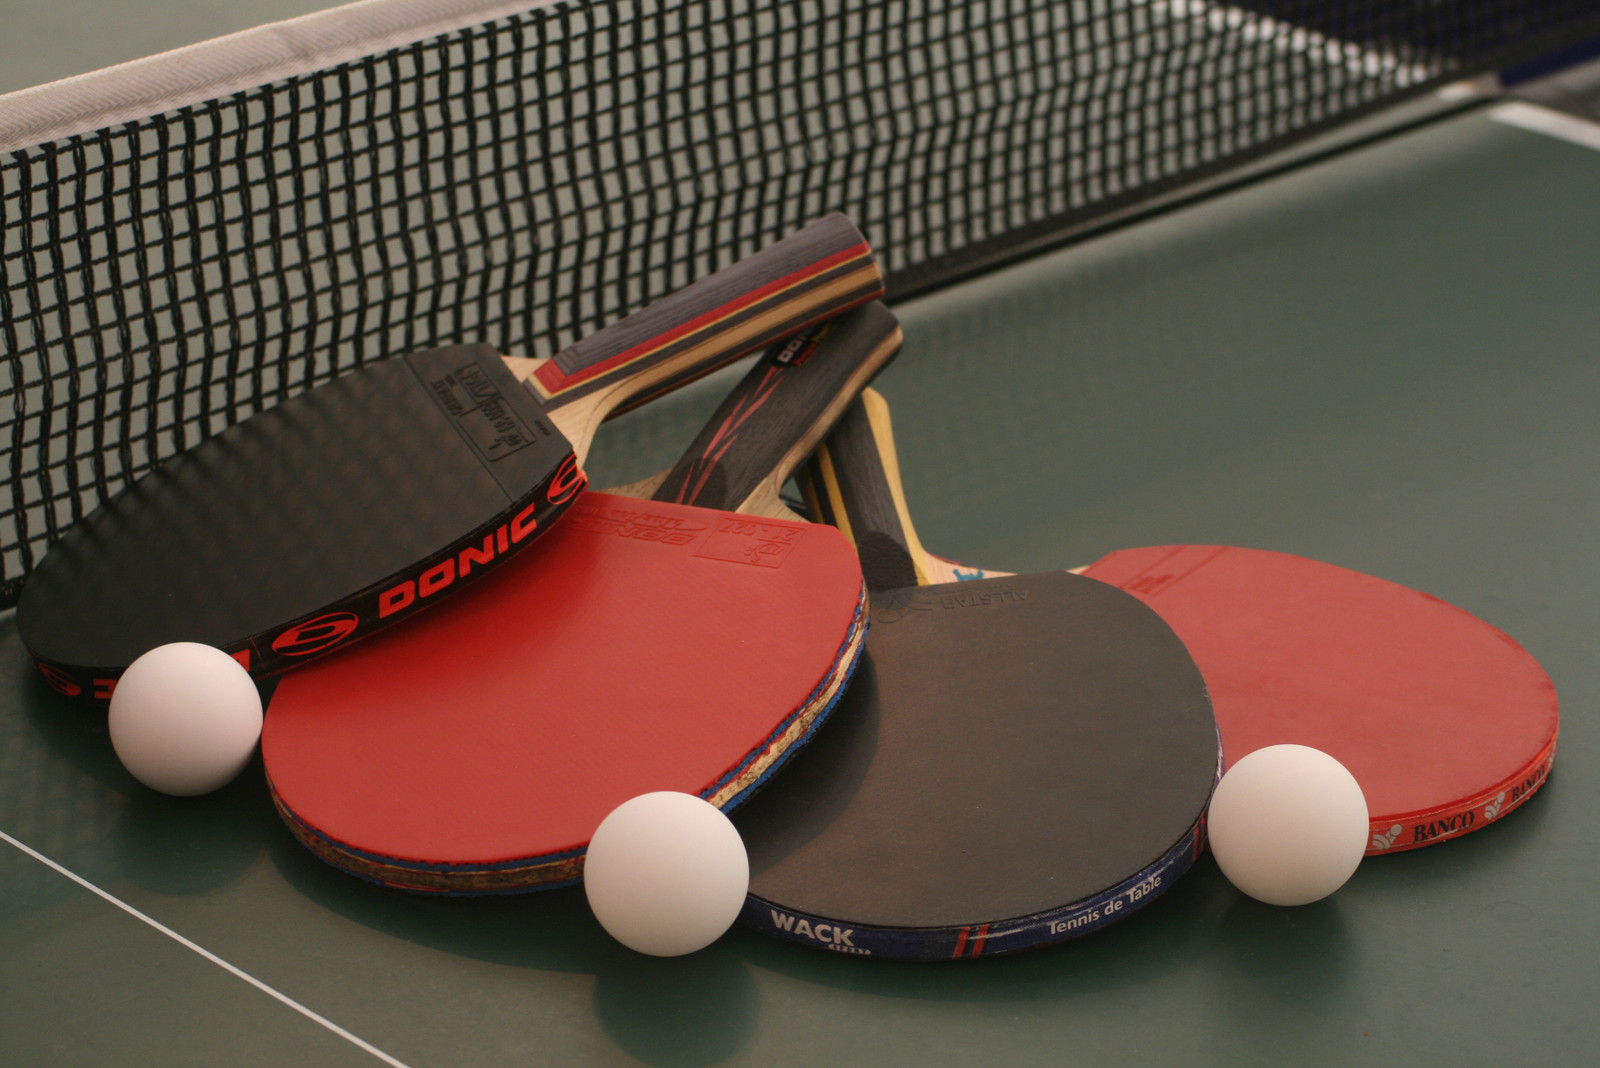 Wack Sport Tennis De Table Aytt Yerres Fullscreen Page